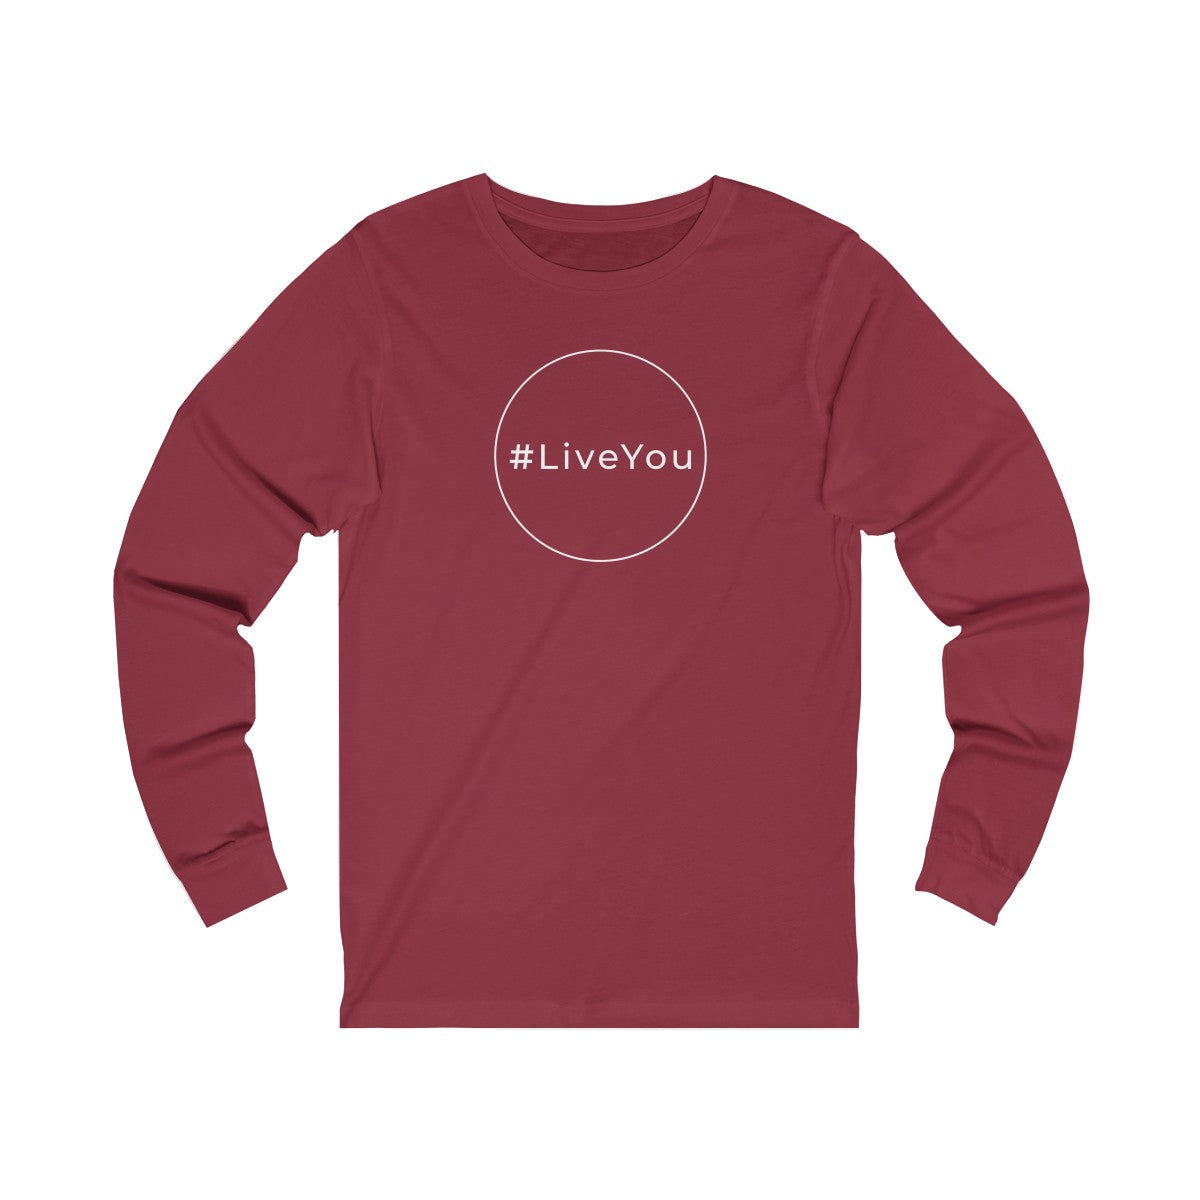 #LiveYou Unisex Jersey Long Sleeve Tee